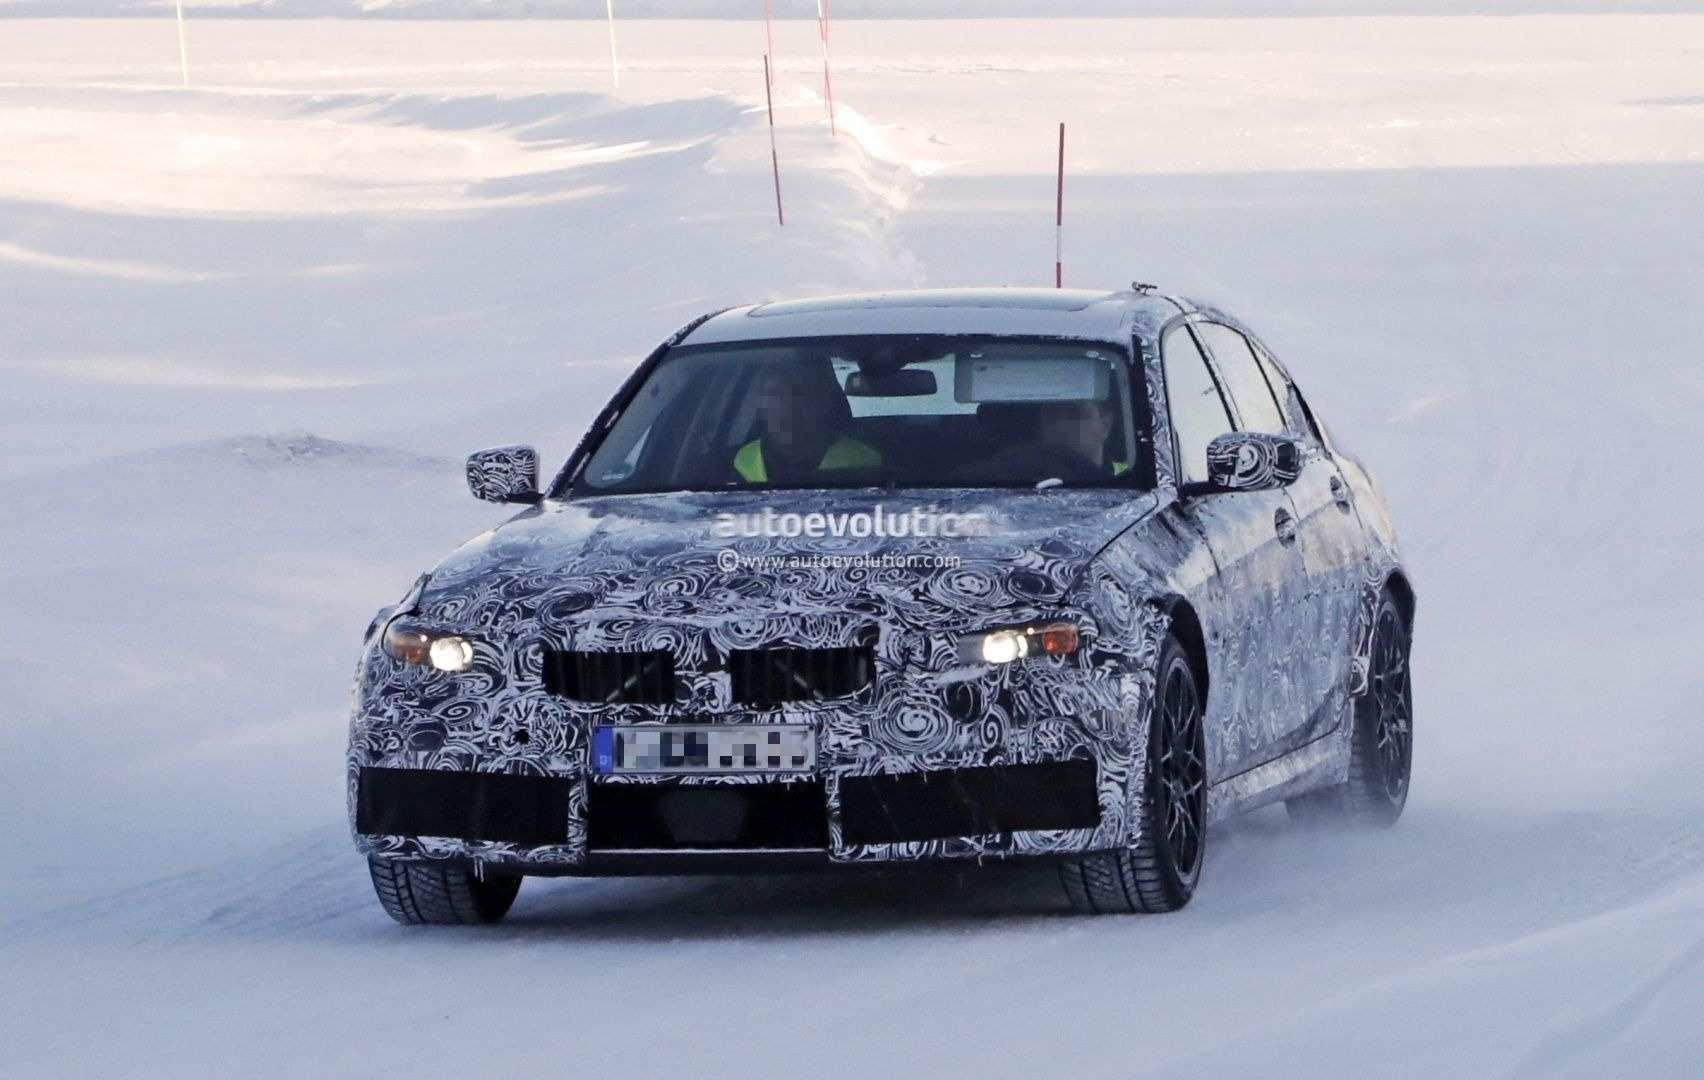 59 The Best 2019 BMW M5 Xdrive Awd Images